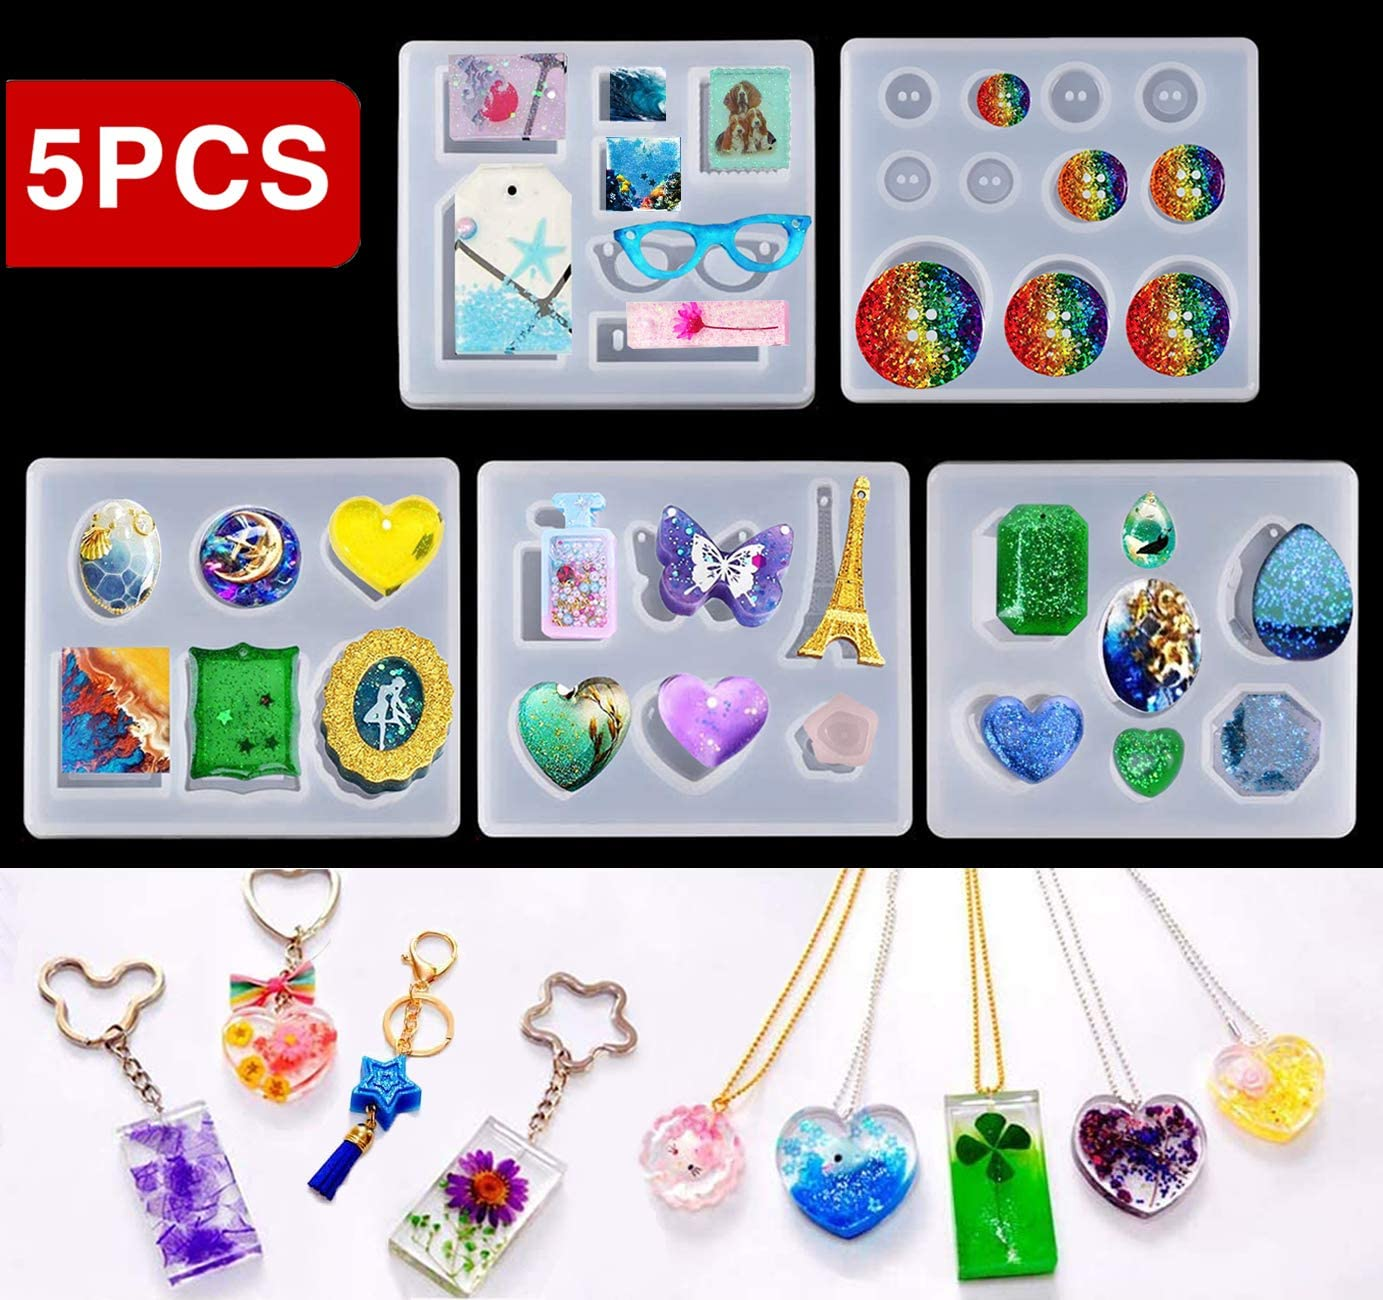 5Pcs//Set Silicone Mould Craft Mold For Resin Necklace Jewelry Pendant Making PF